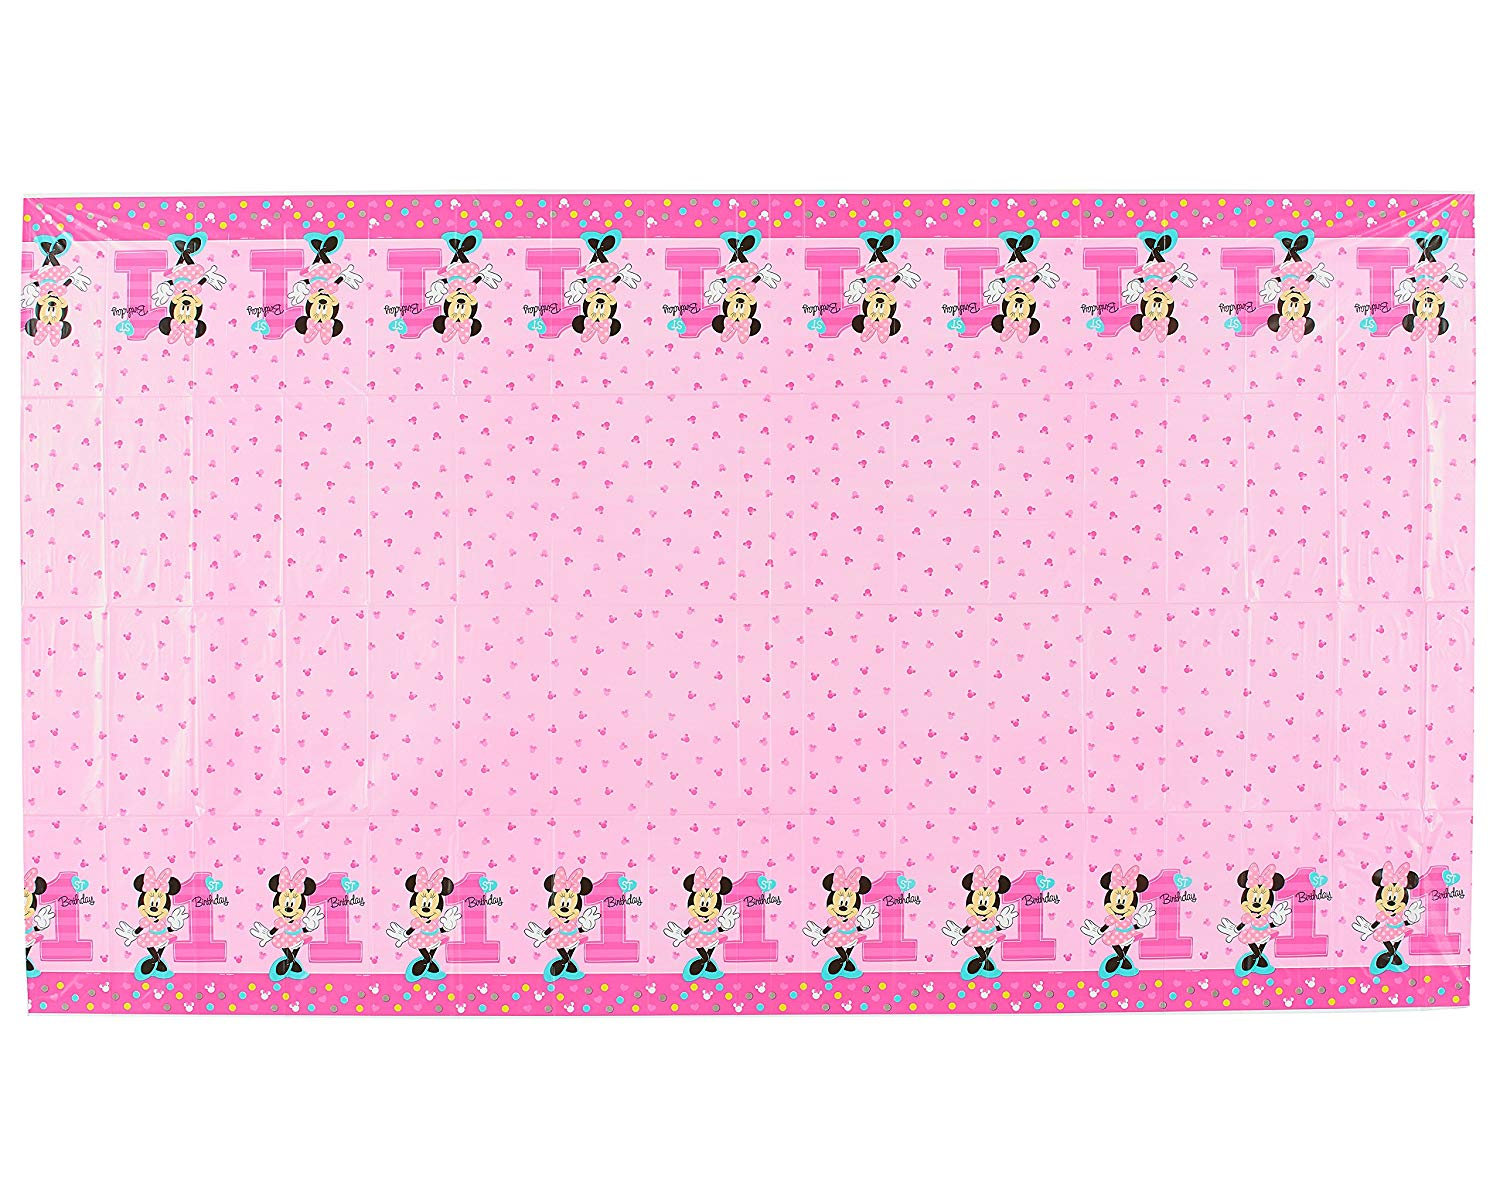 Disney Minnie Mouse 1st Birthday Table Cover Measures 54 in x 96 in 36 sq  sc 1 st  Beyond Party Supplies & Disney Minnie Mouse 1st Birthday Table Cover Measures 54 in x 96 in ...